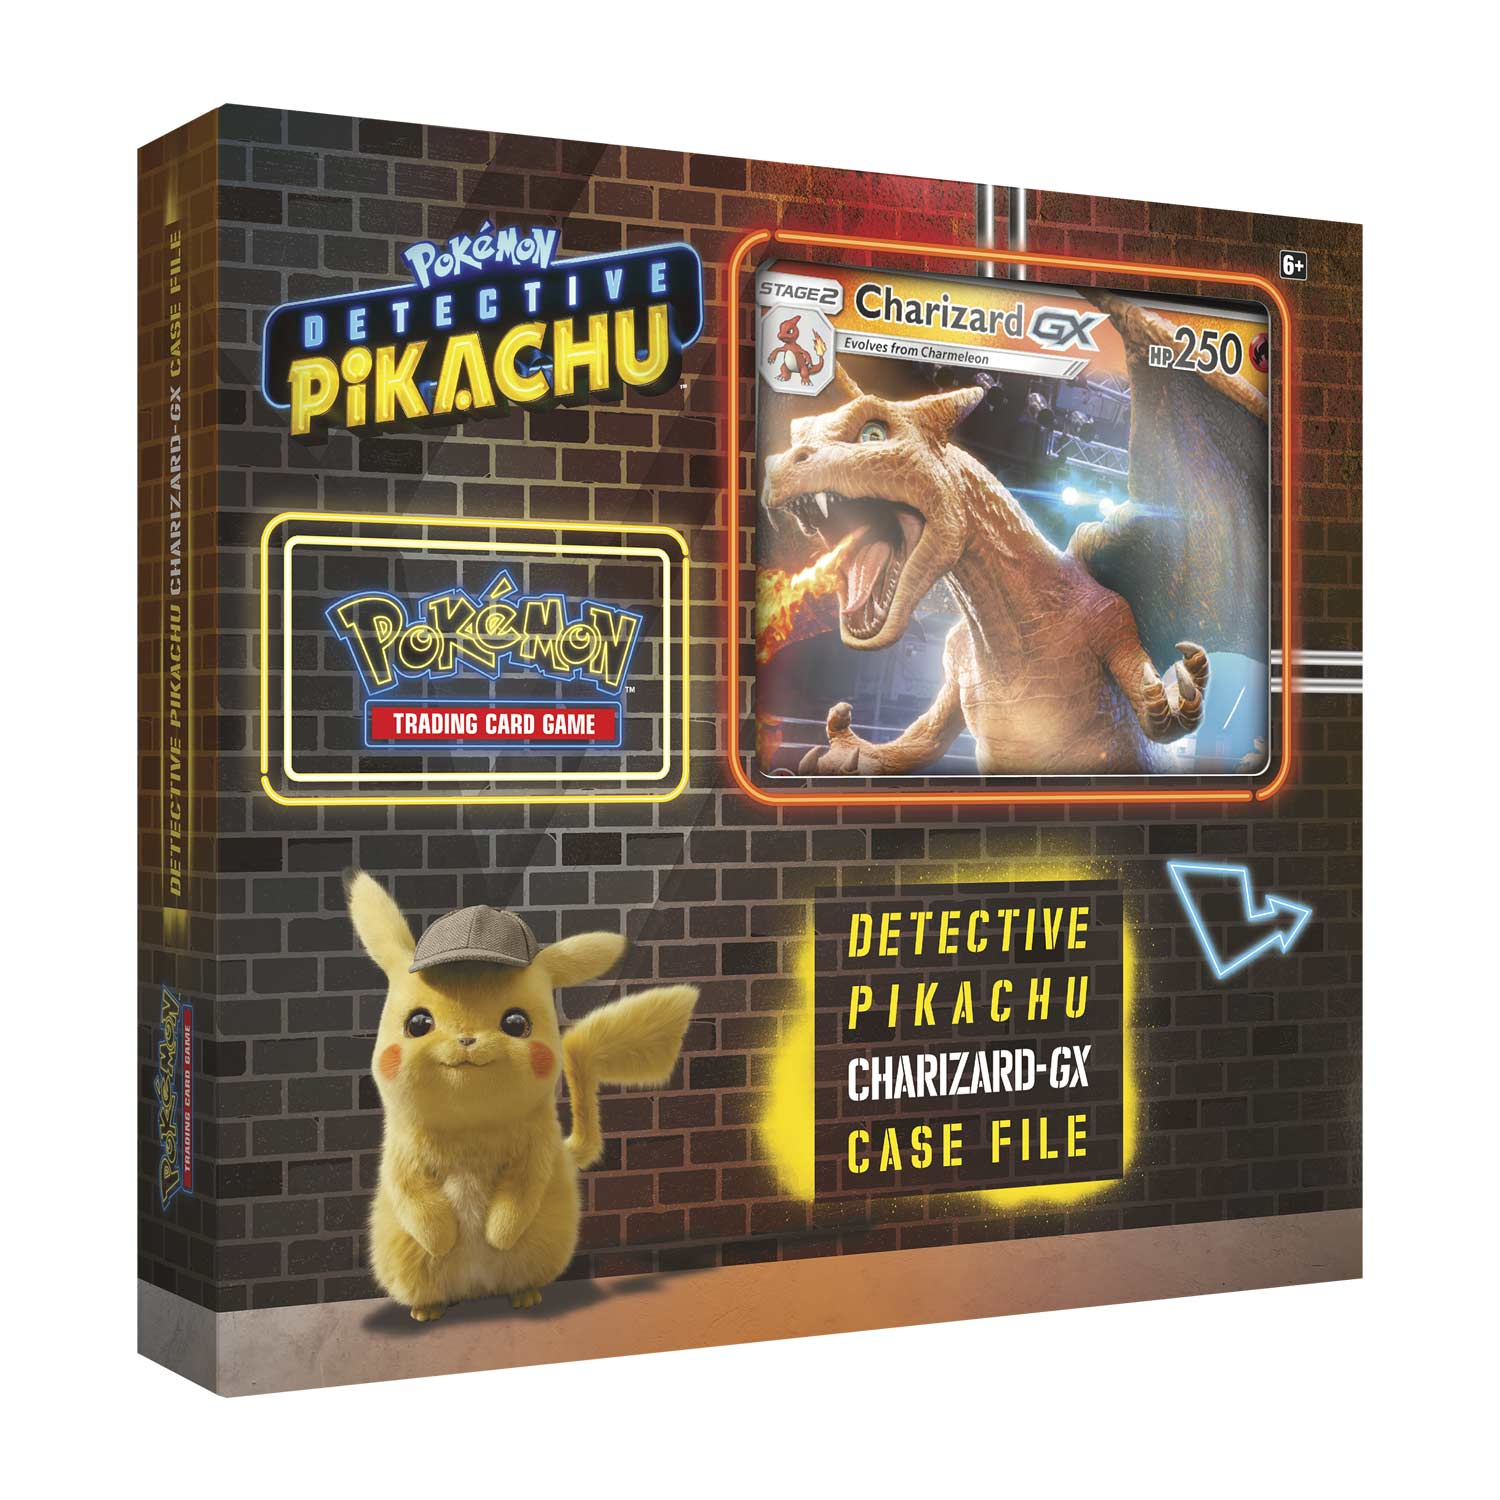 Pokémon Tcg Detective Pikachu Charizard Gx Case File Pokémon Center